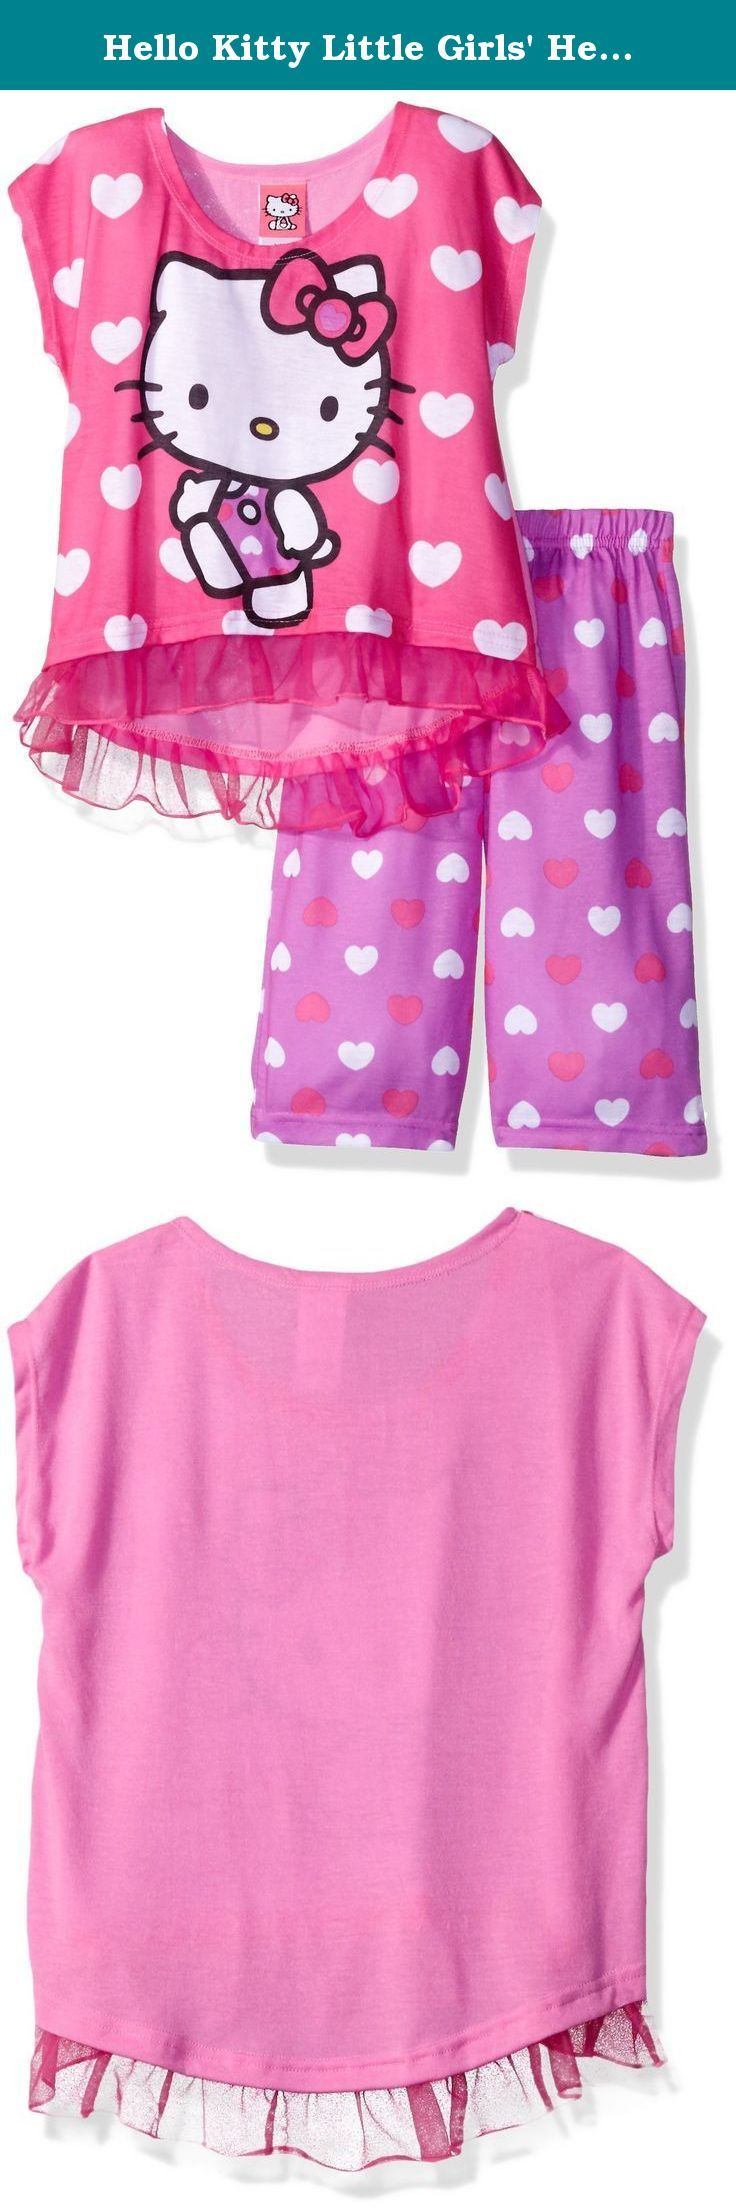 Hello Kitty Little Girls' Hearts 2Pc Pajama Pant Set, Assorted, 6. Hello Kitty is sure to steal your daughter's heart with this sleepwear set! the bright colors and fun ruffle hem are sure to make this pajama set a hit! perfect for sleeping and lounging.